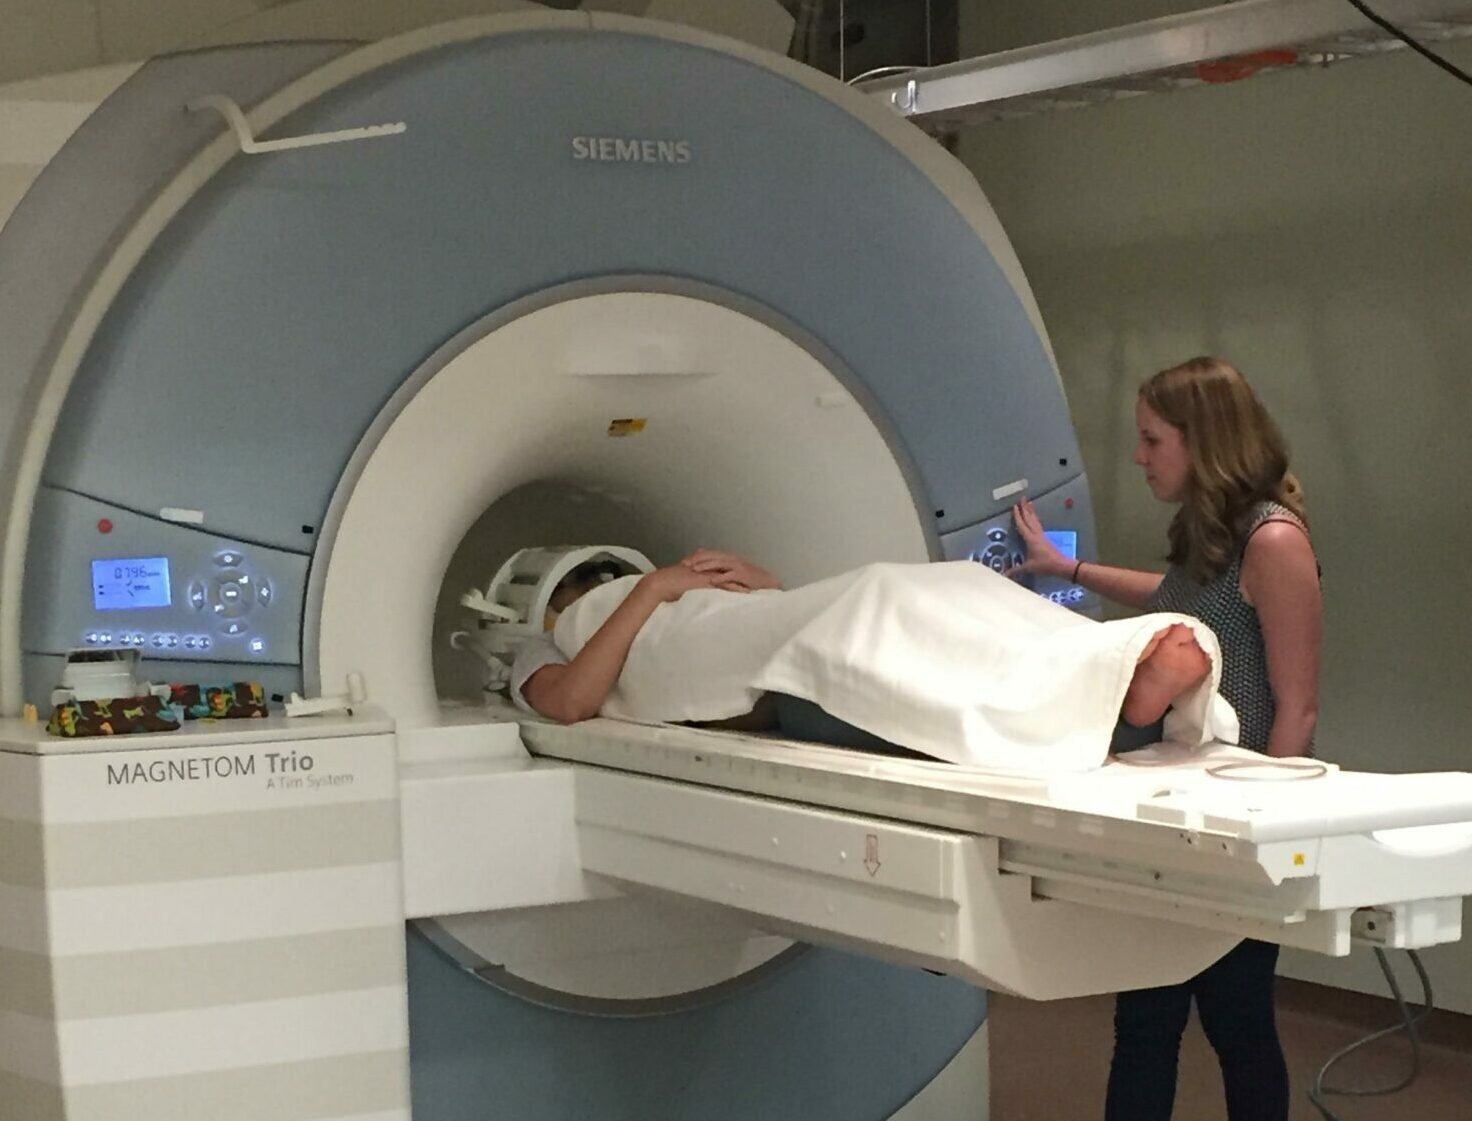 a woman puts a patient into the MRI